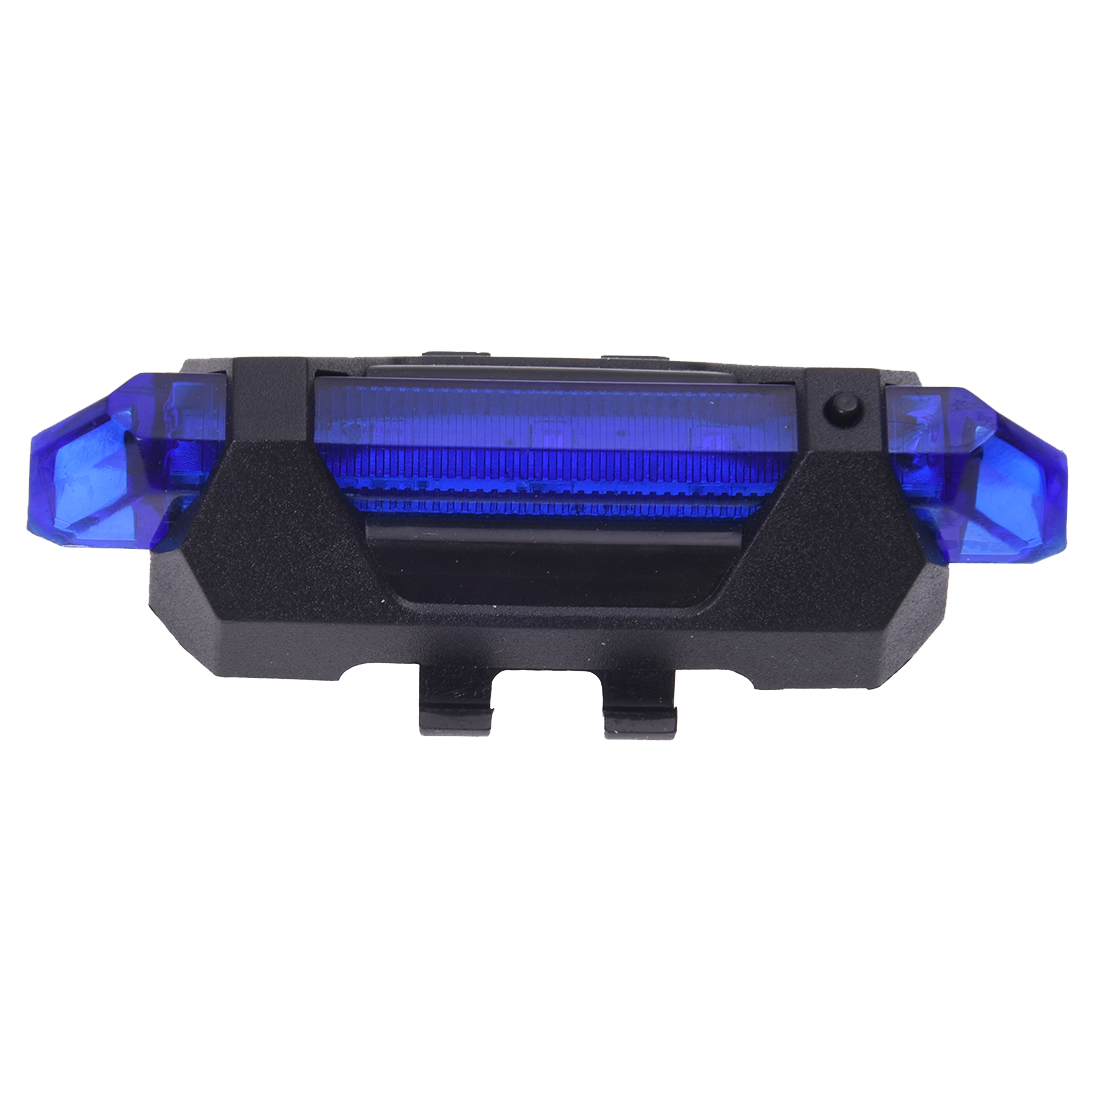 5LED Bicycle Rear Tail Lights Flash USB Rechargeable Bike Safety Lamp Waterproof, Black+ ...